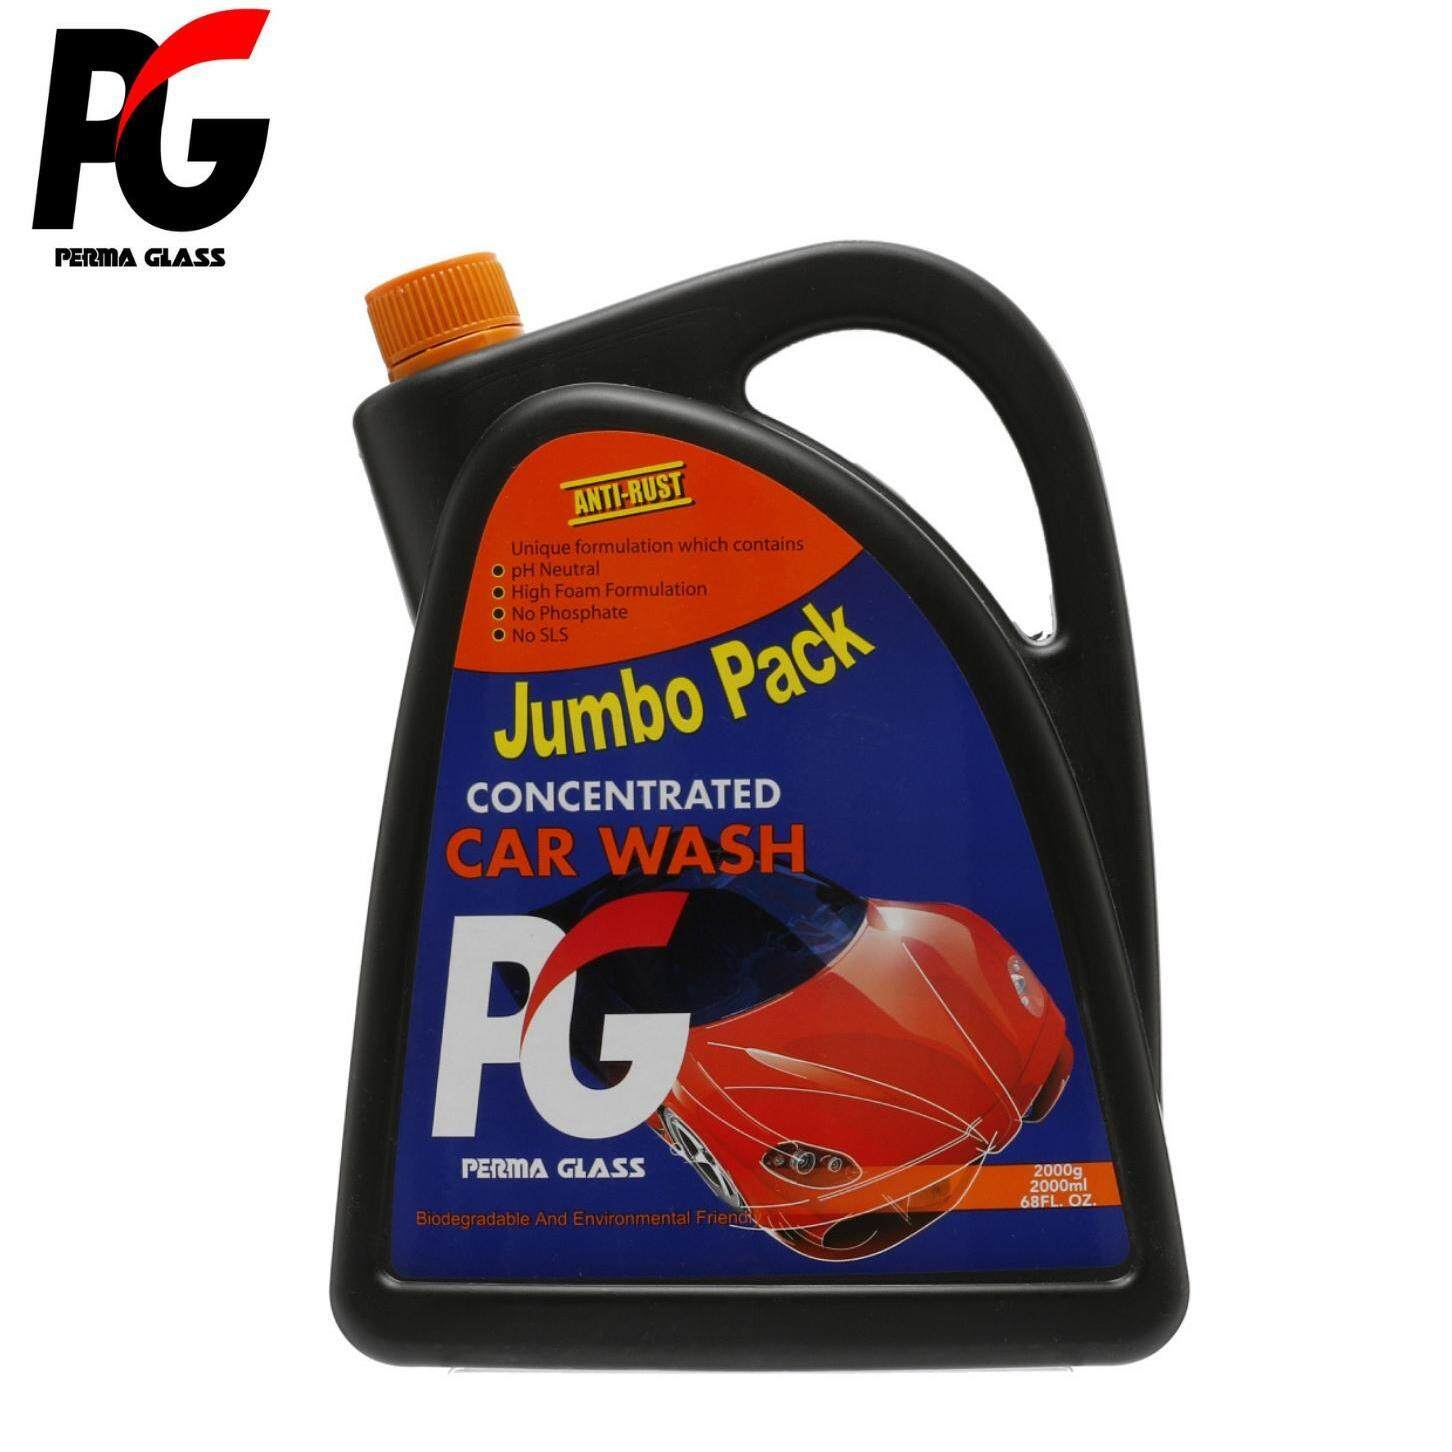 PG CONCENTRATED CAR WASH (1000ML) - CAR CARE EXTERIOR